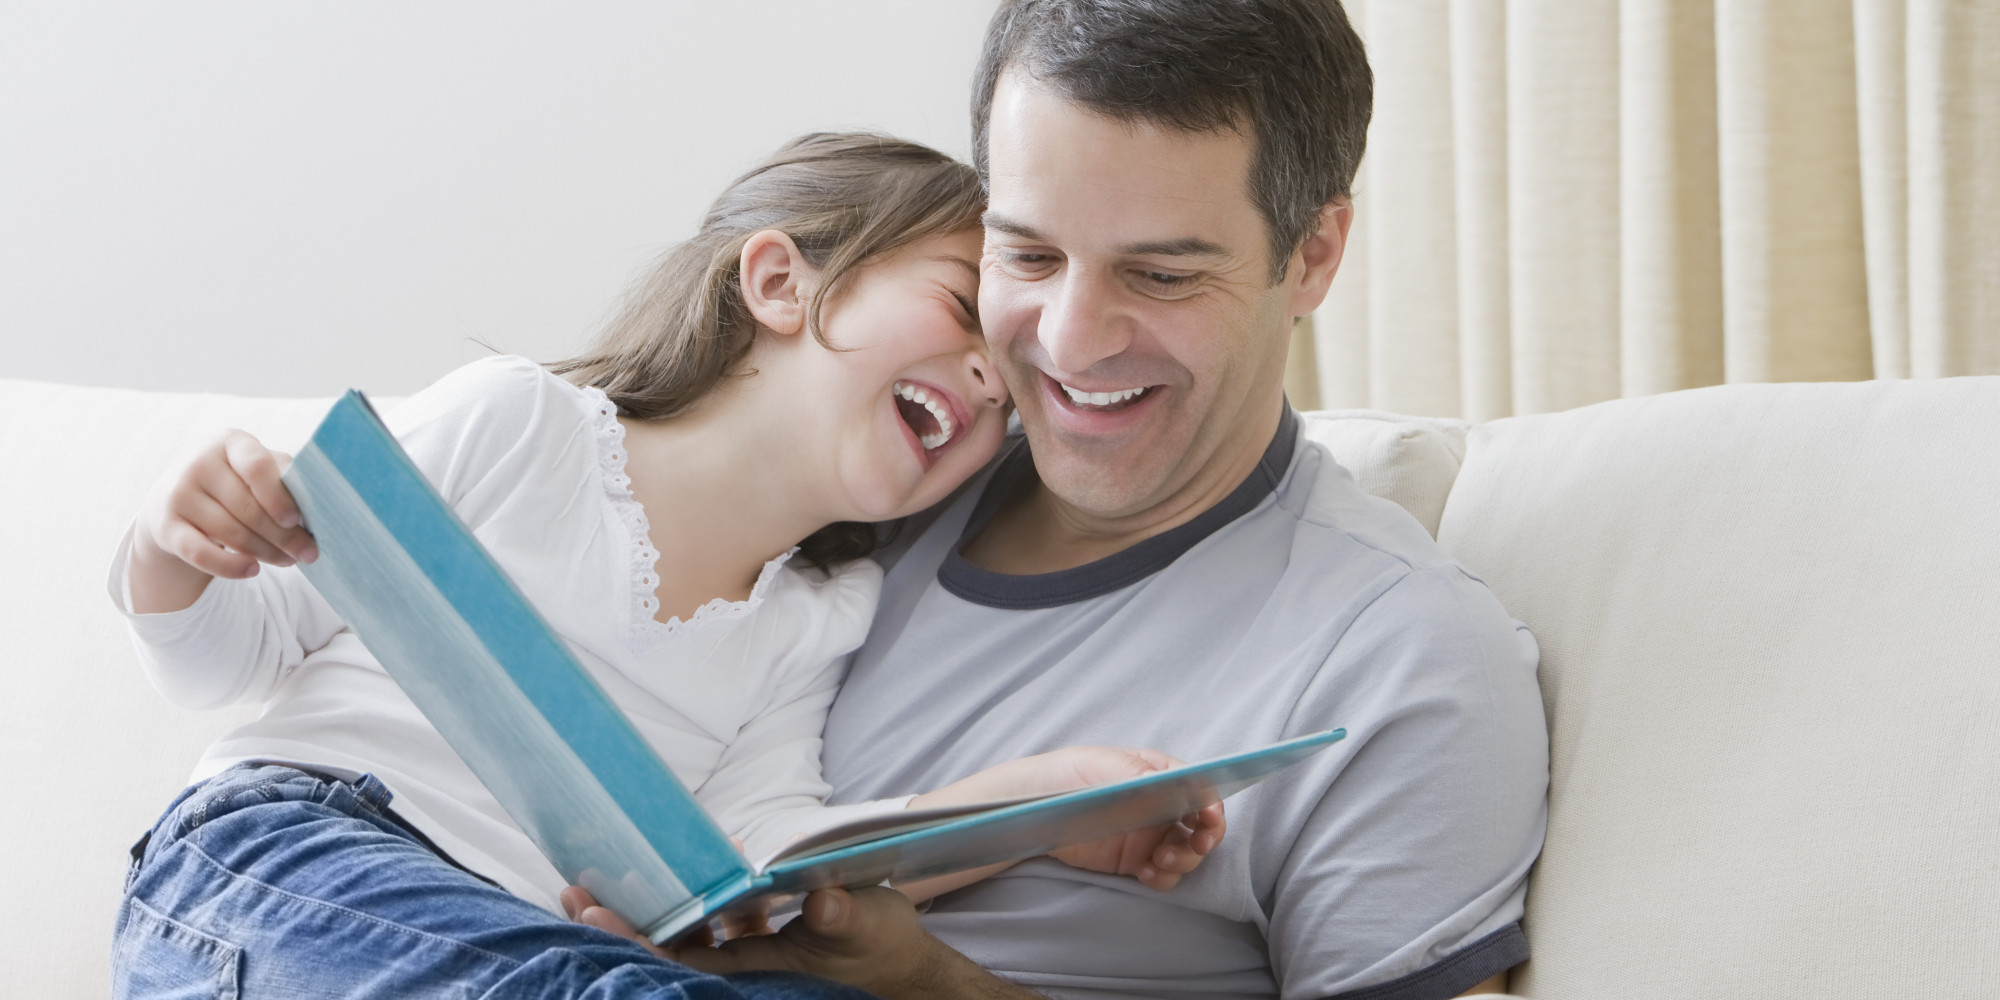 dad reading to daughter